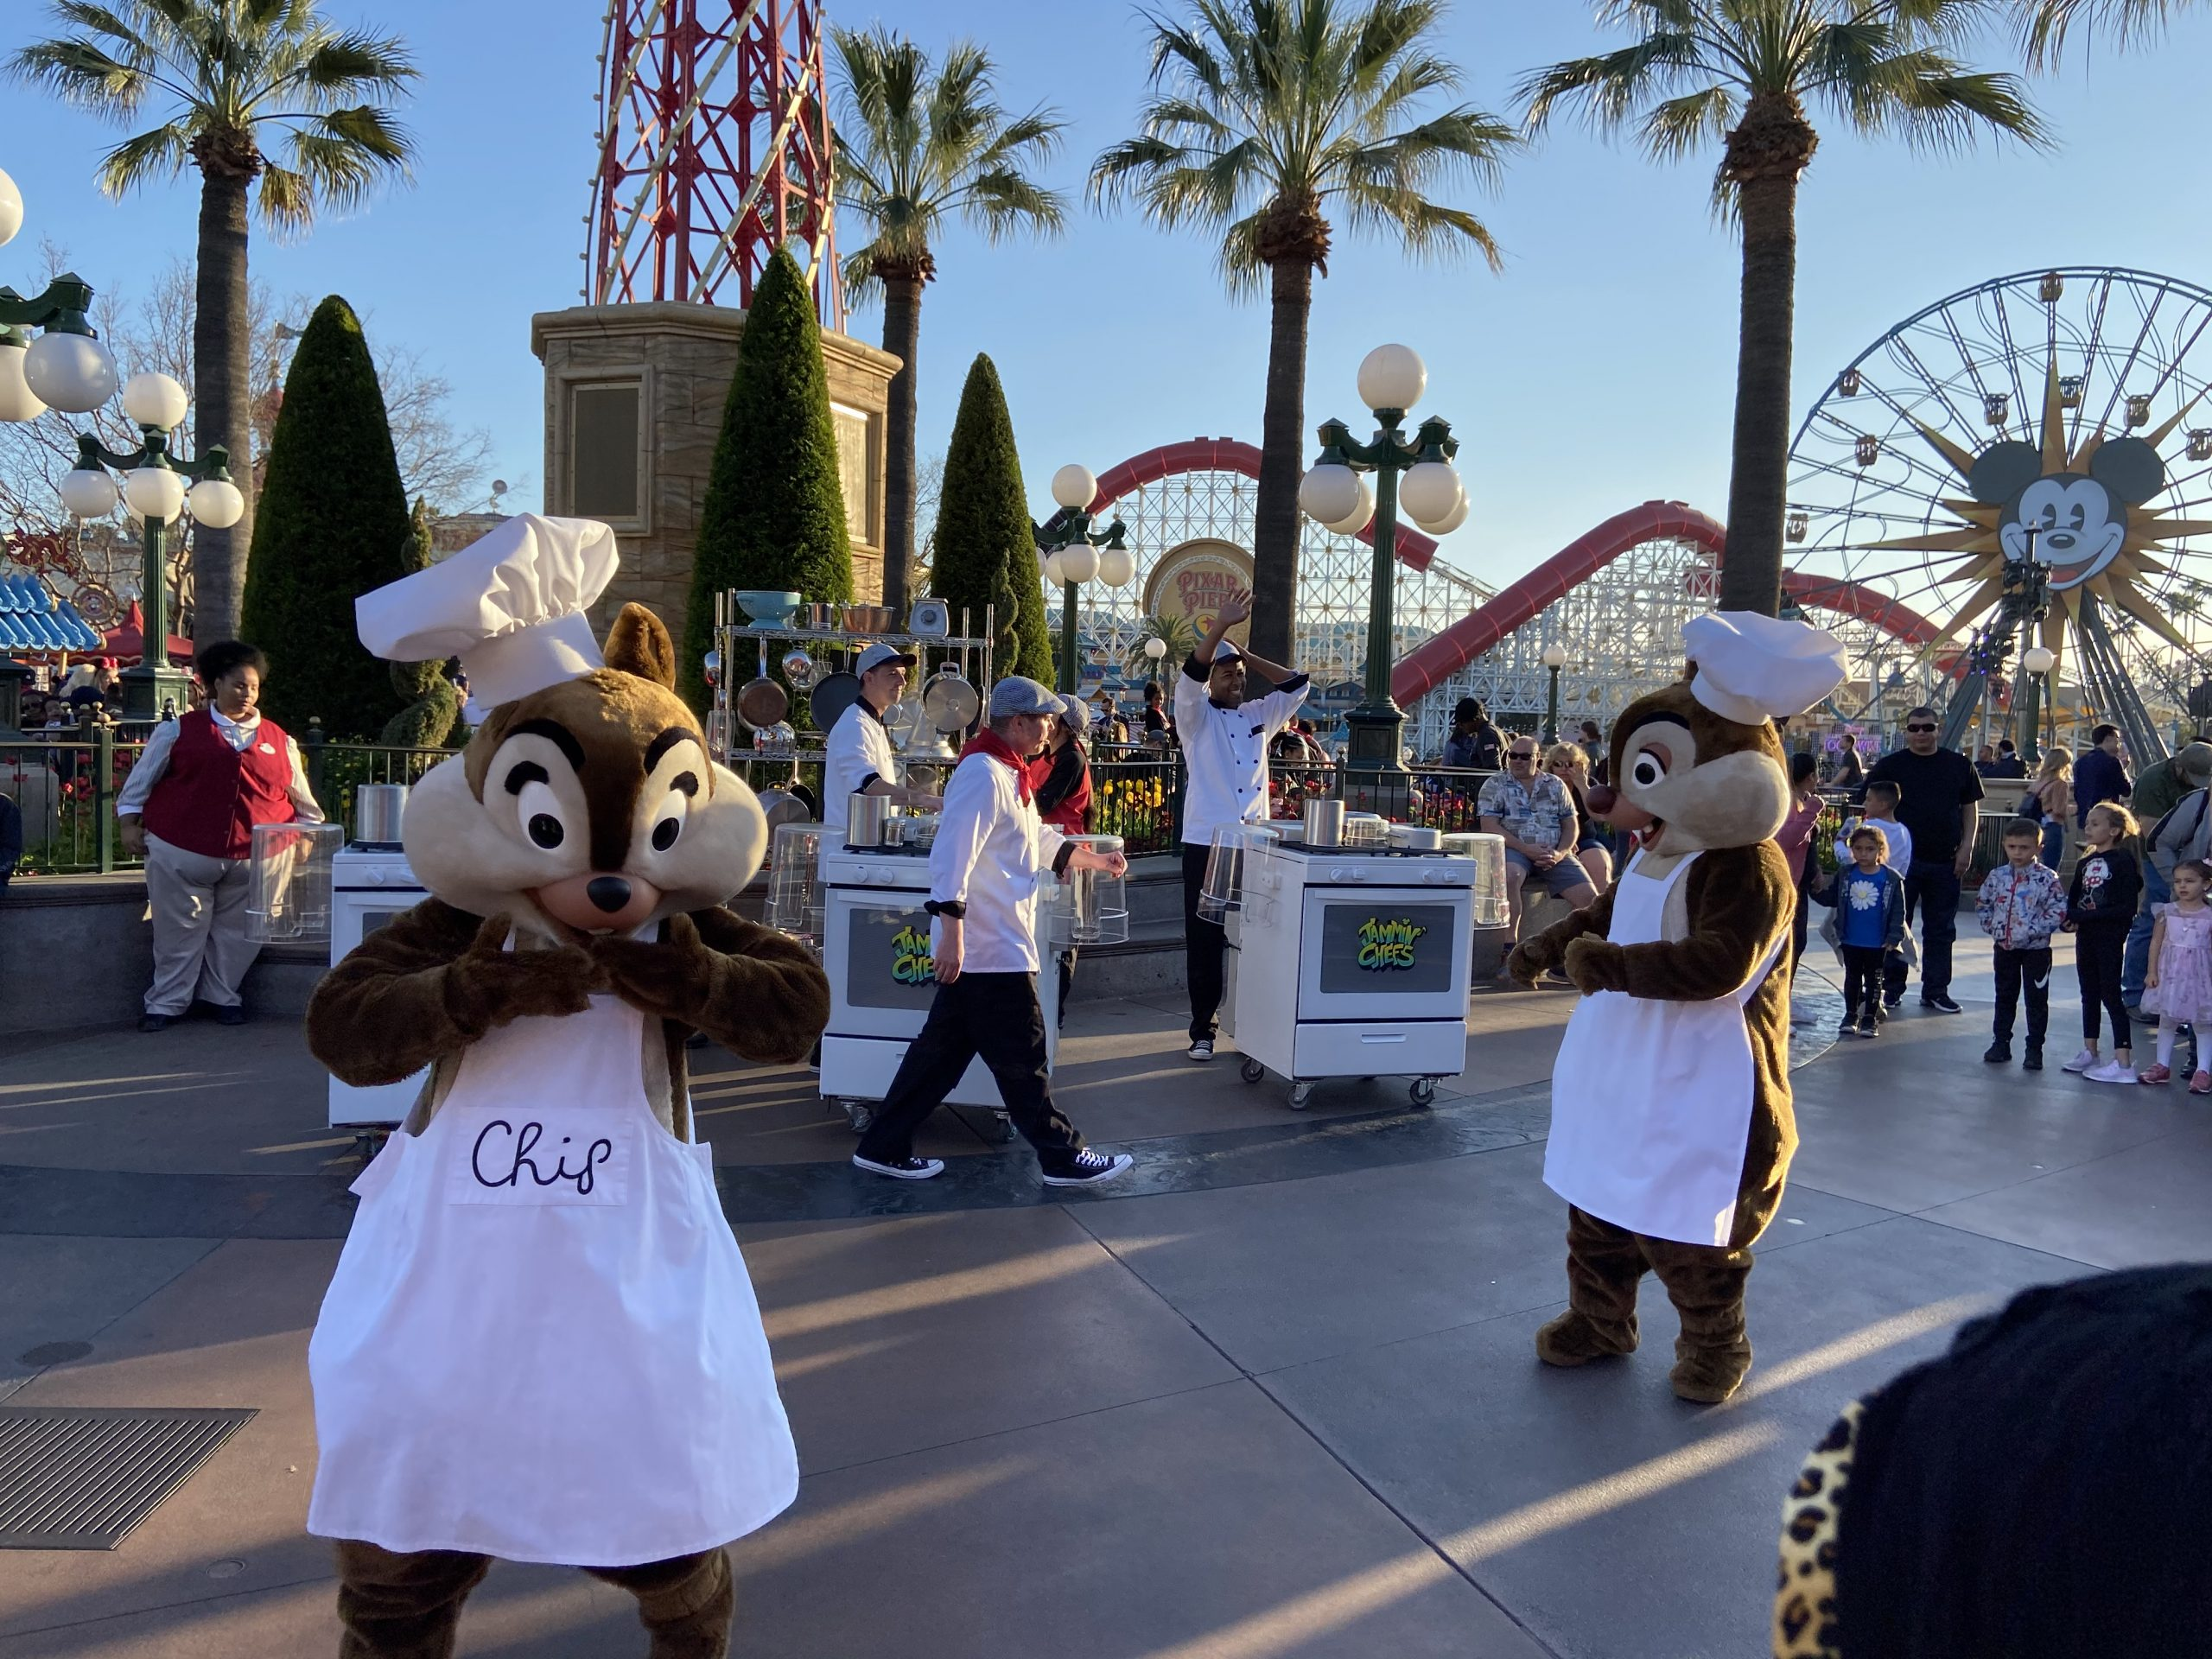 Chip and Dale with Jammin' Chefs at Disneyland Food and Wine Festival